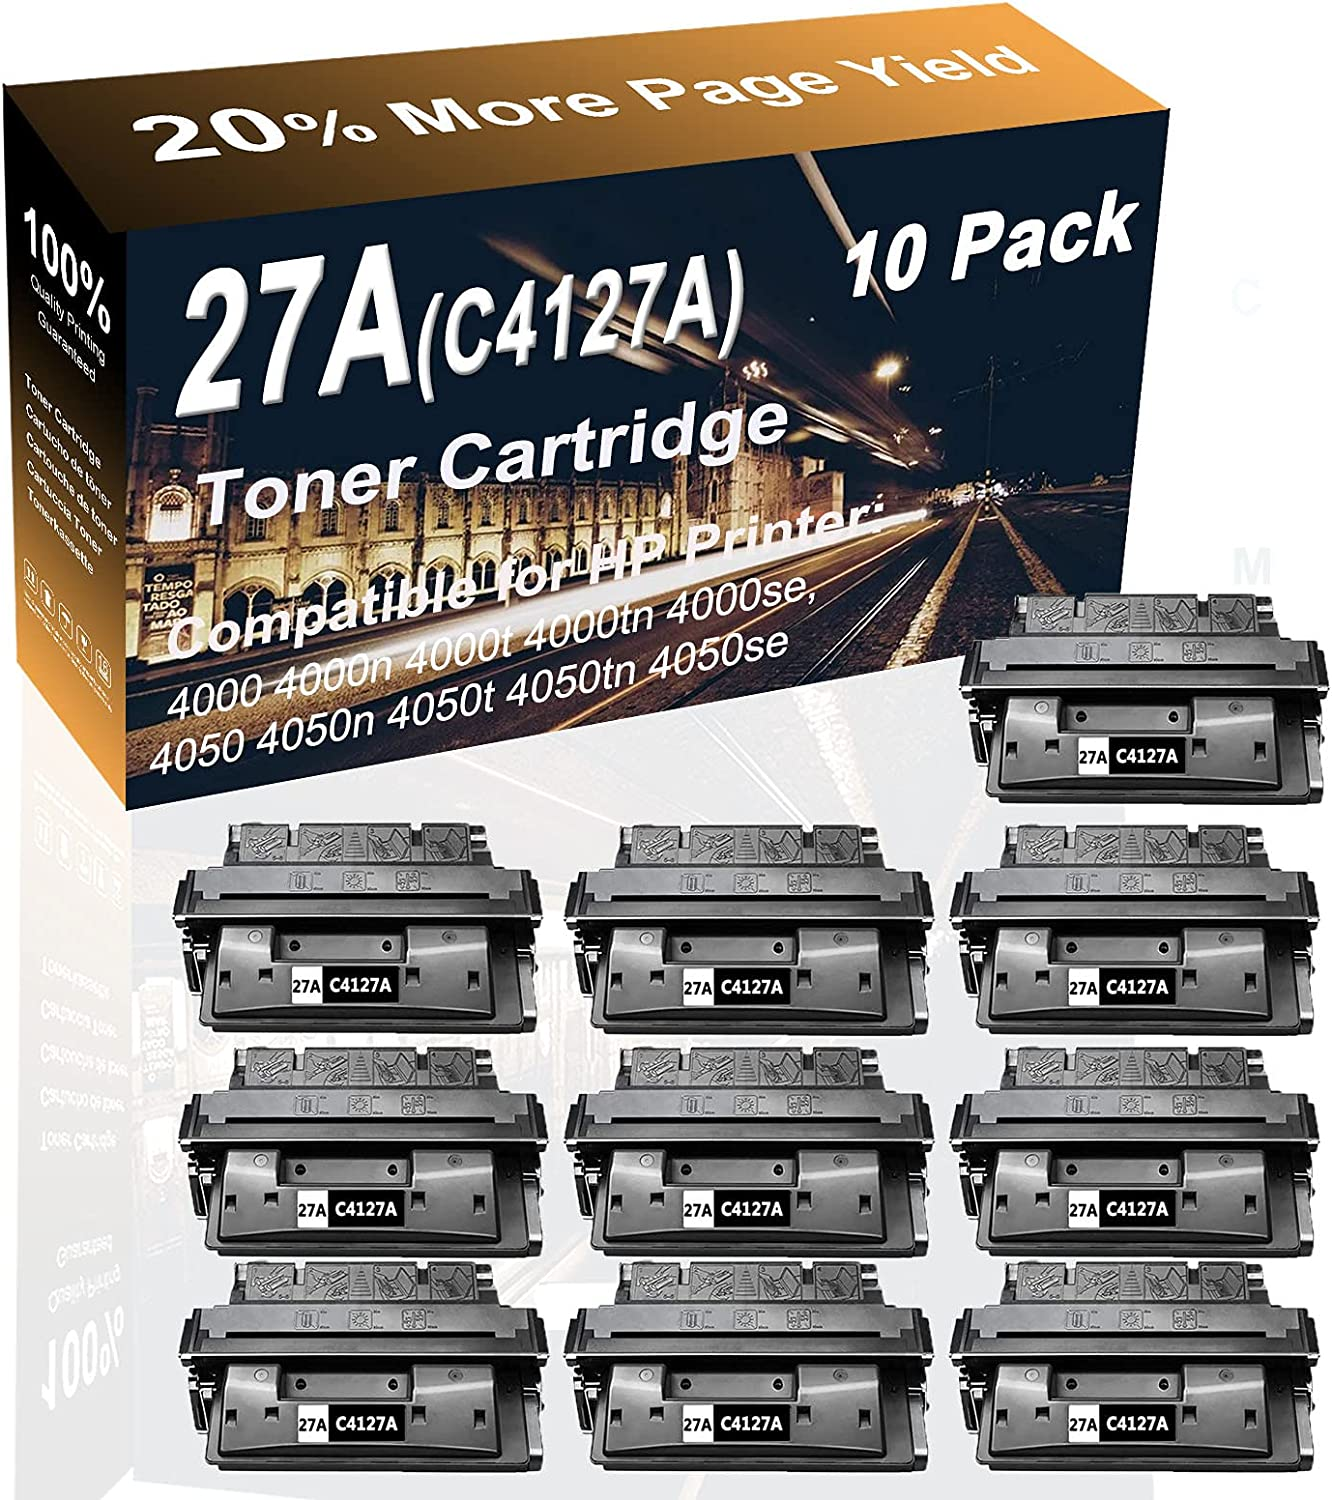 10-Pack (Black) Compatible High Yield 27A (C4127A) Printer Toner Cartridge use for HP 4050t, 4050tn, 4050se Printer